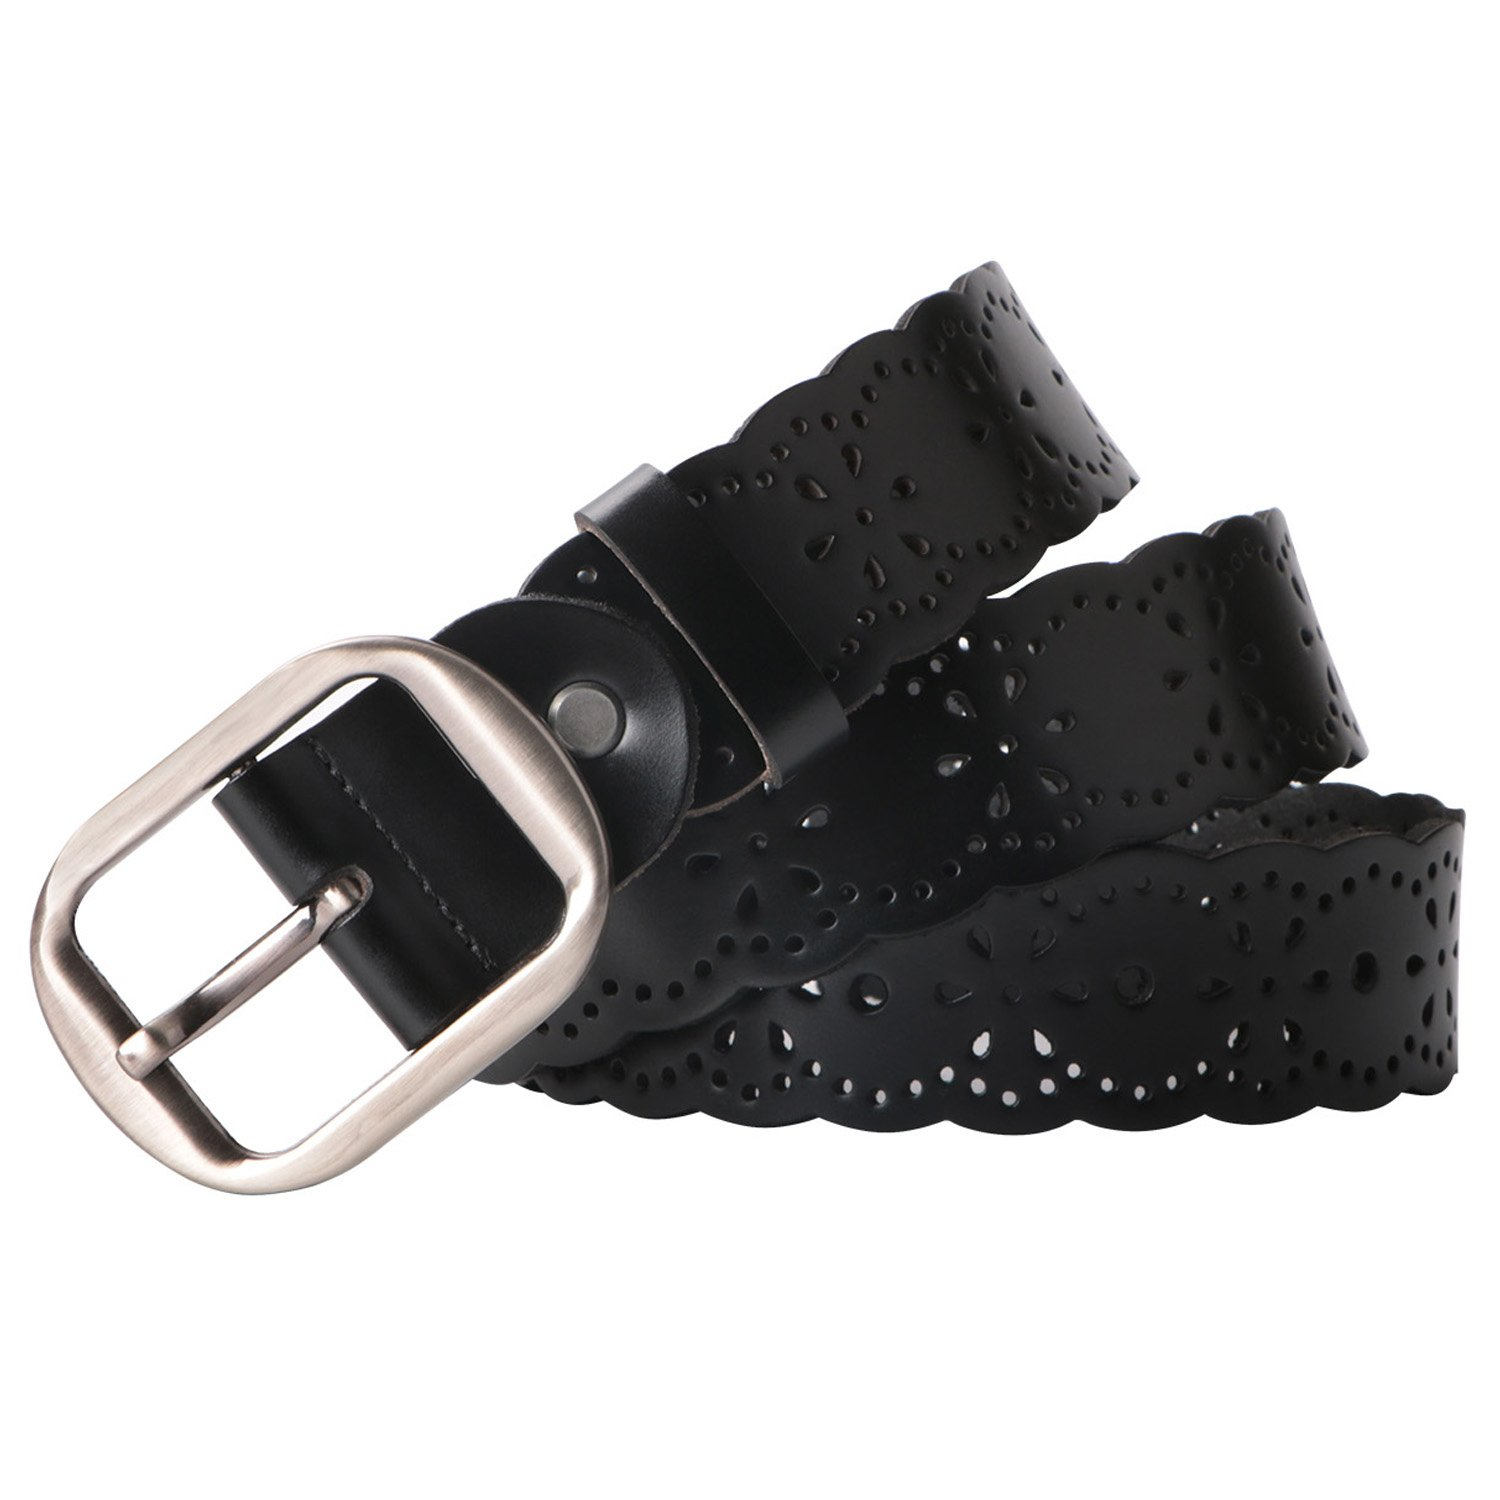 Women Leather Belts 38mm Wide Jeans Belt Fashion Belts for Skirts Metal Buckle Belts Leather Black Fits 27 Inch to 35 Inch By MoAnBee